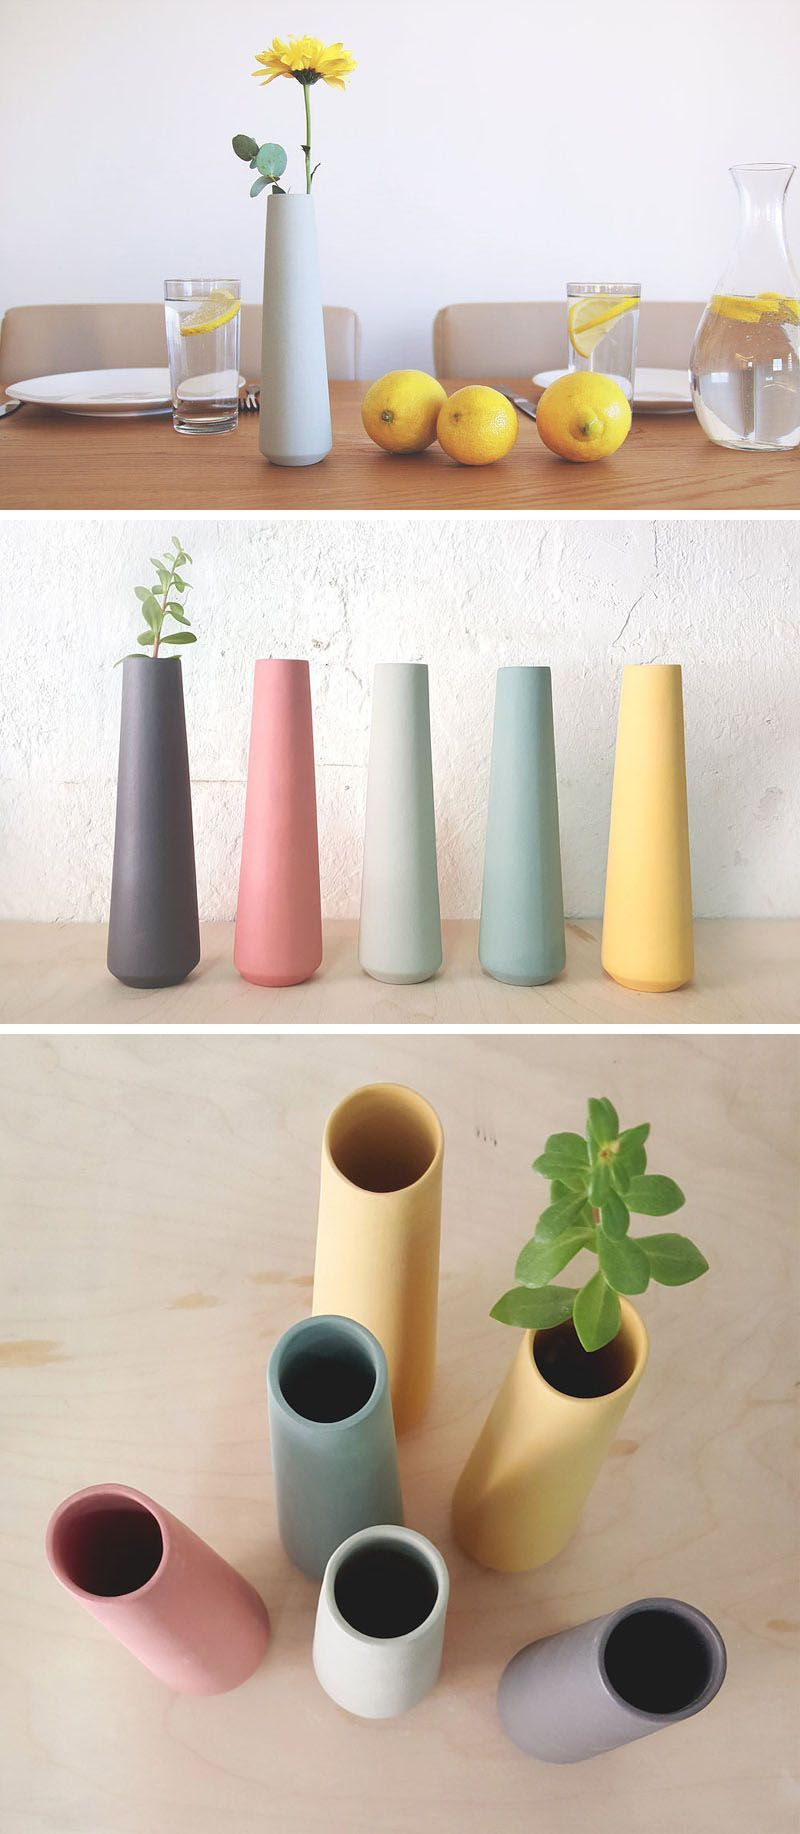 Innovations For Interior Designs With Ceramics With Images